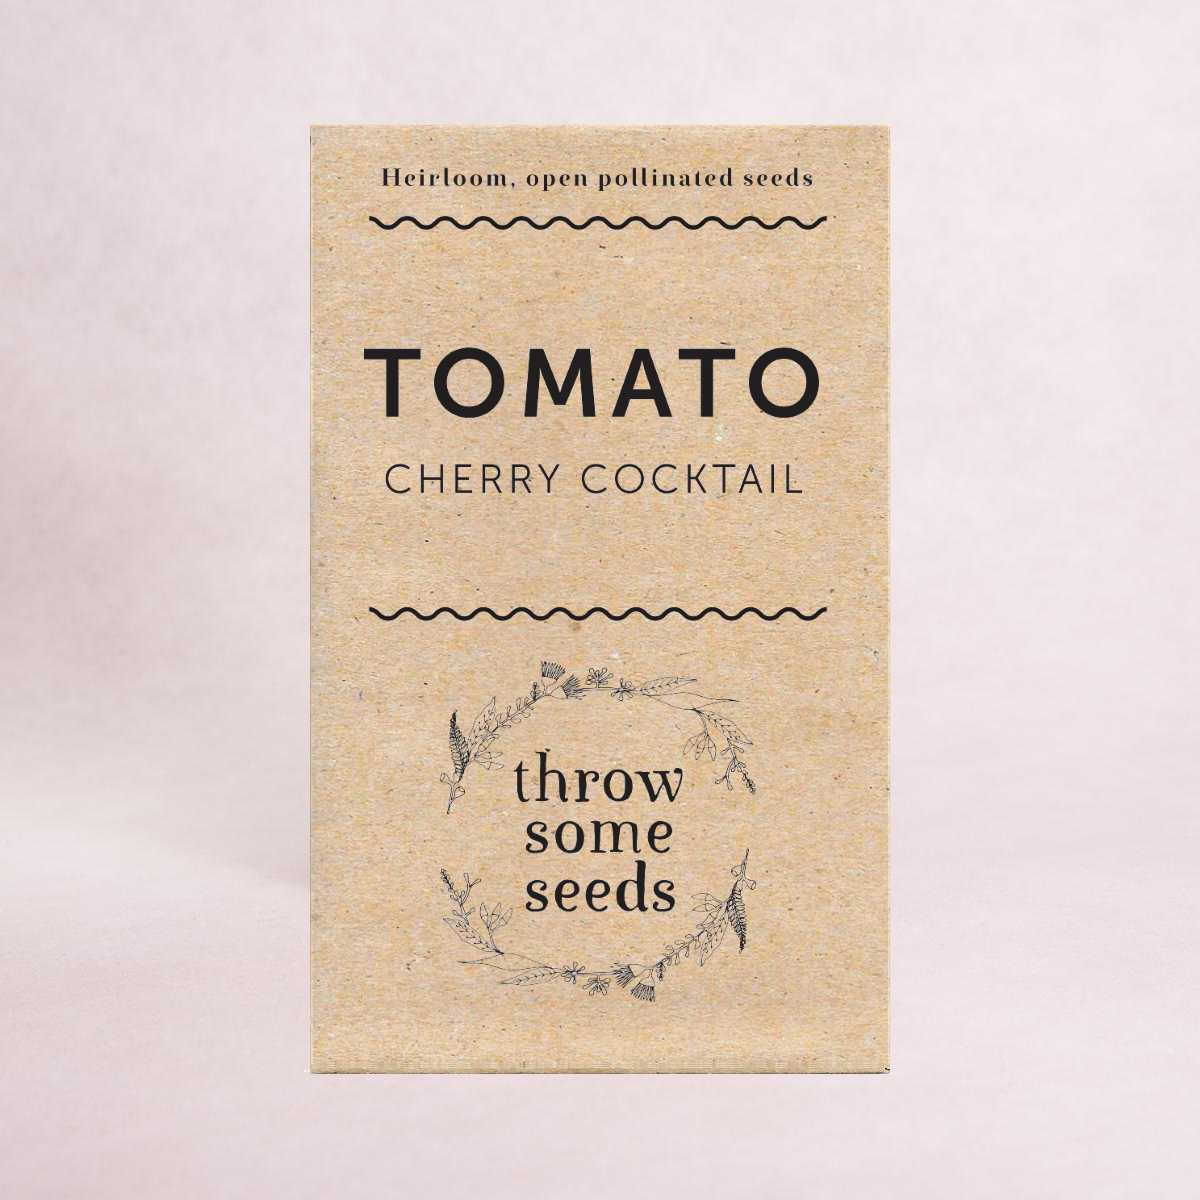 Tomato (Cherry Cocktail) - Heirloom Seeds - Seeds - Throw Some Seeds